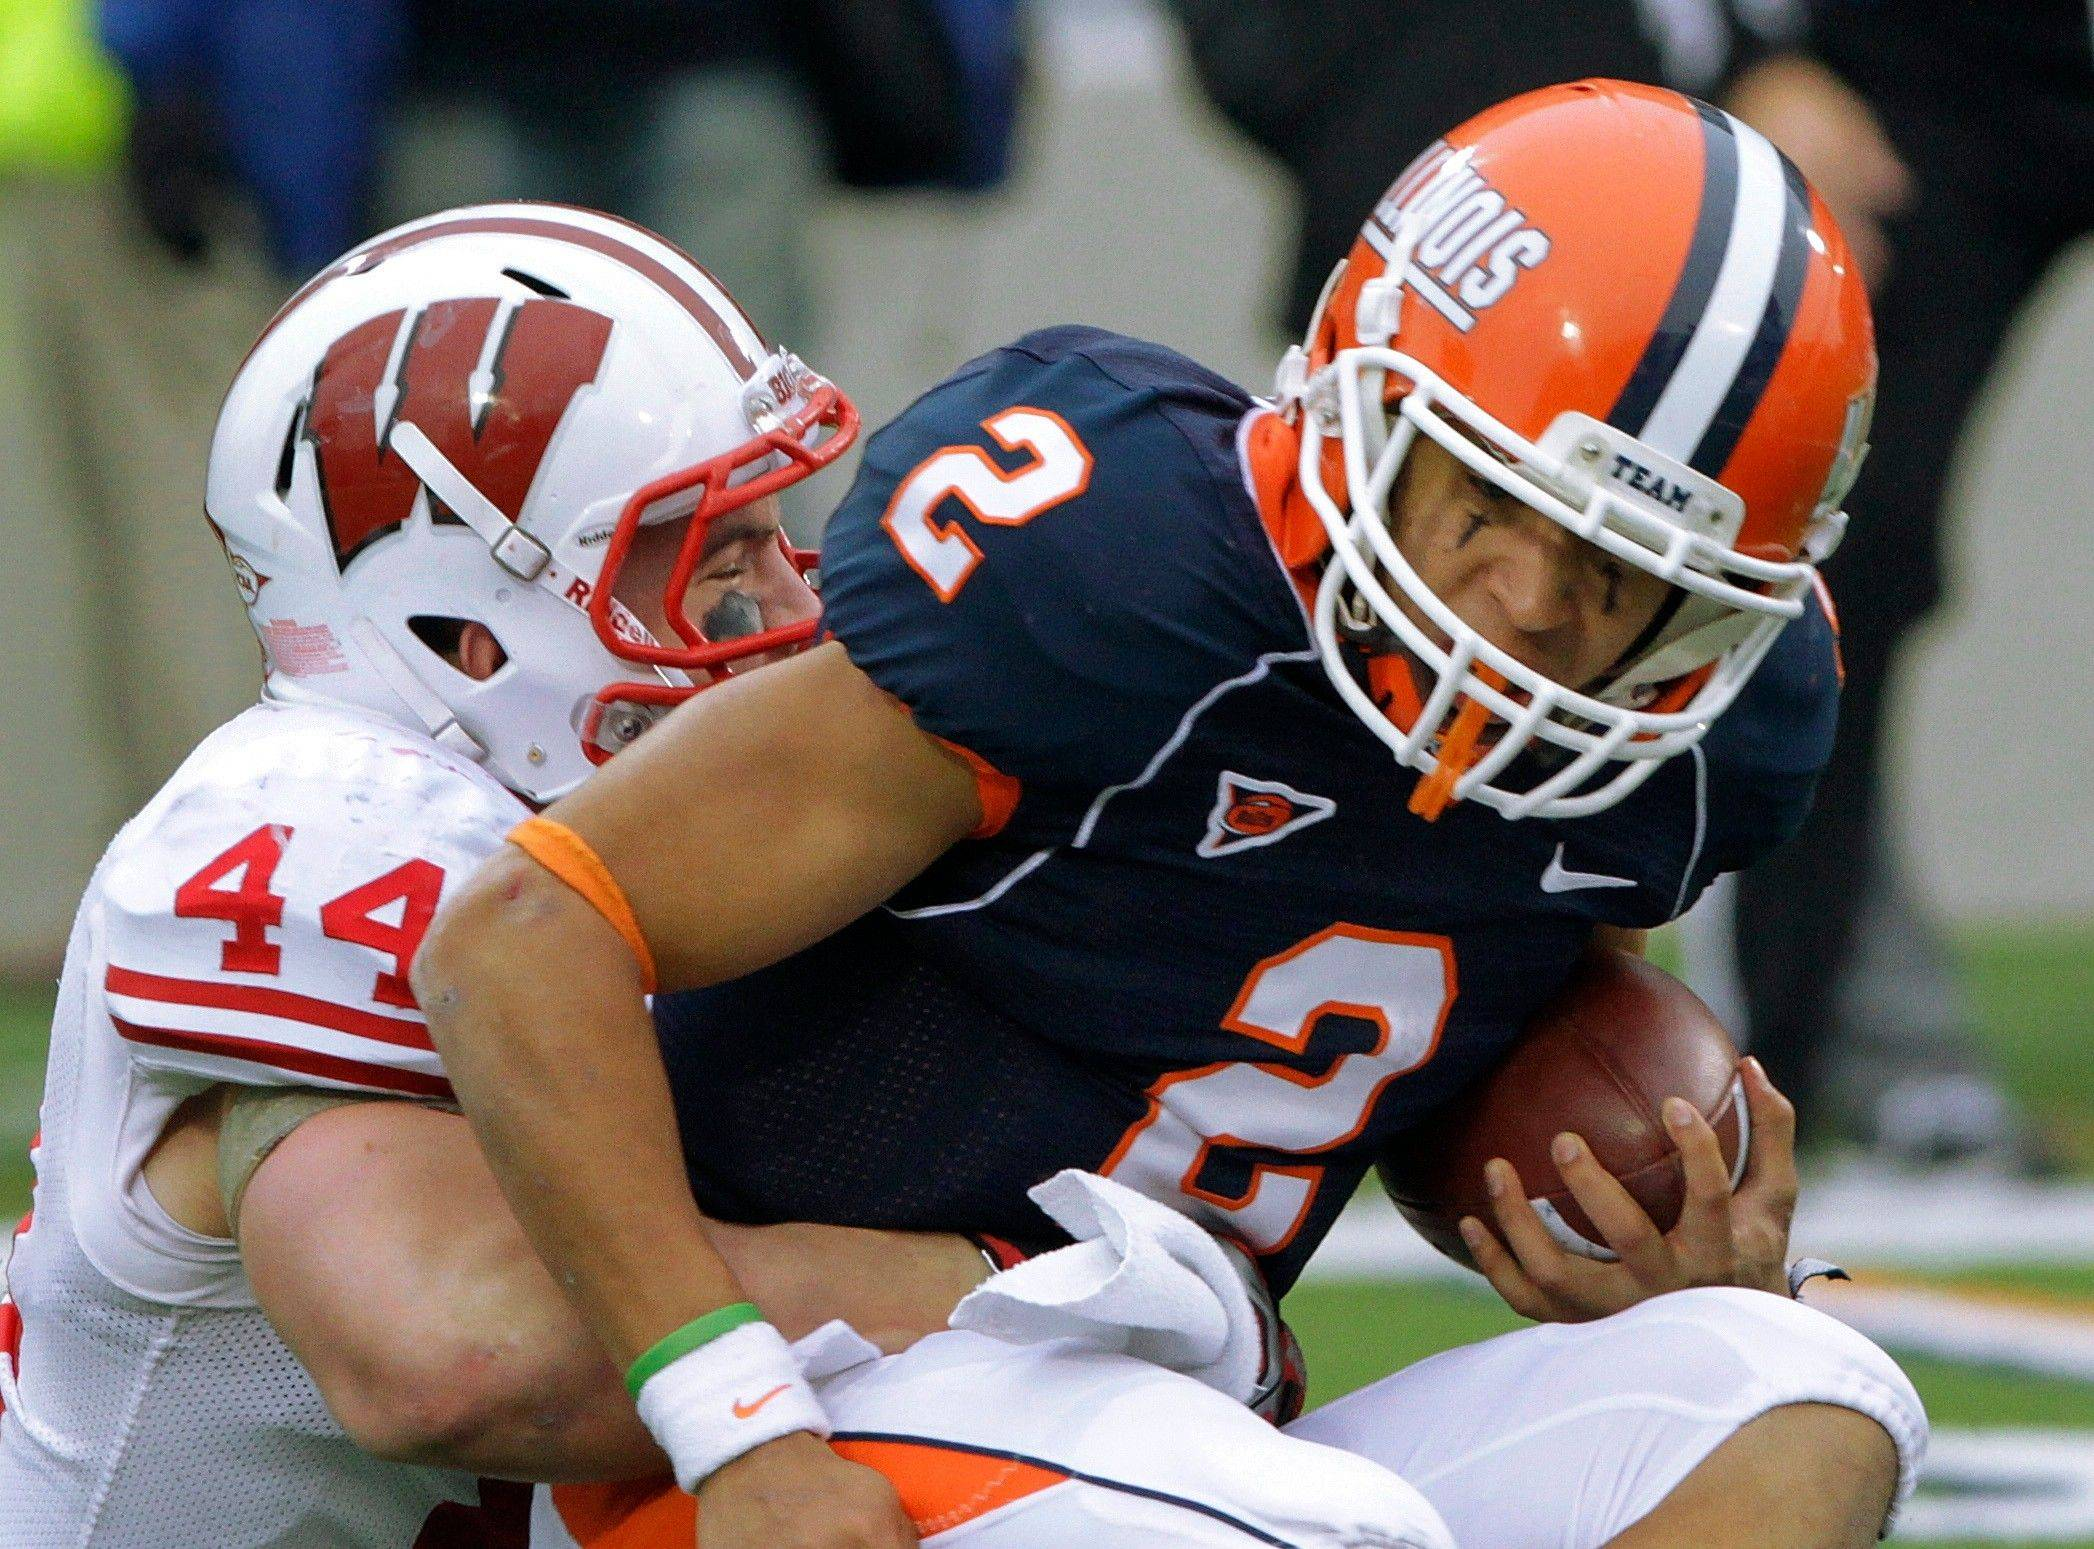 With 35 bowl games to fill, even the 6-6 Illini got a bid.